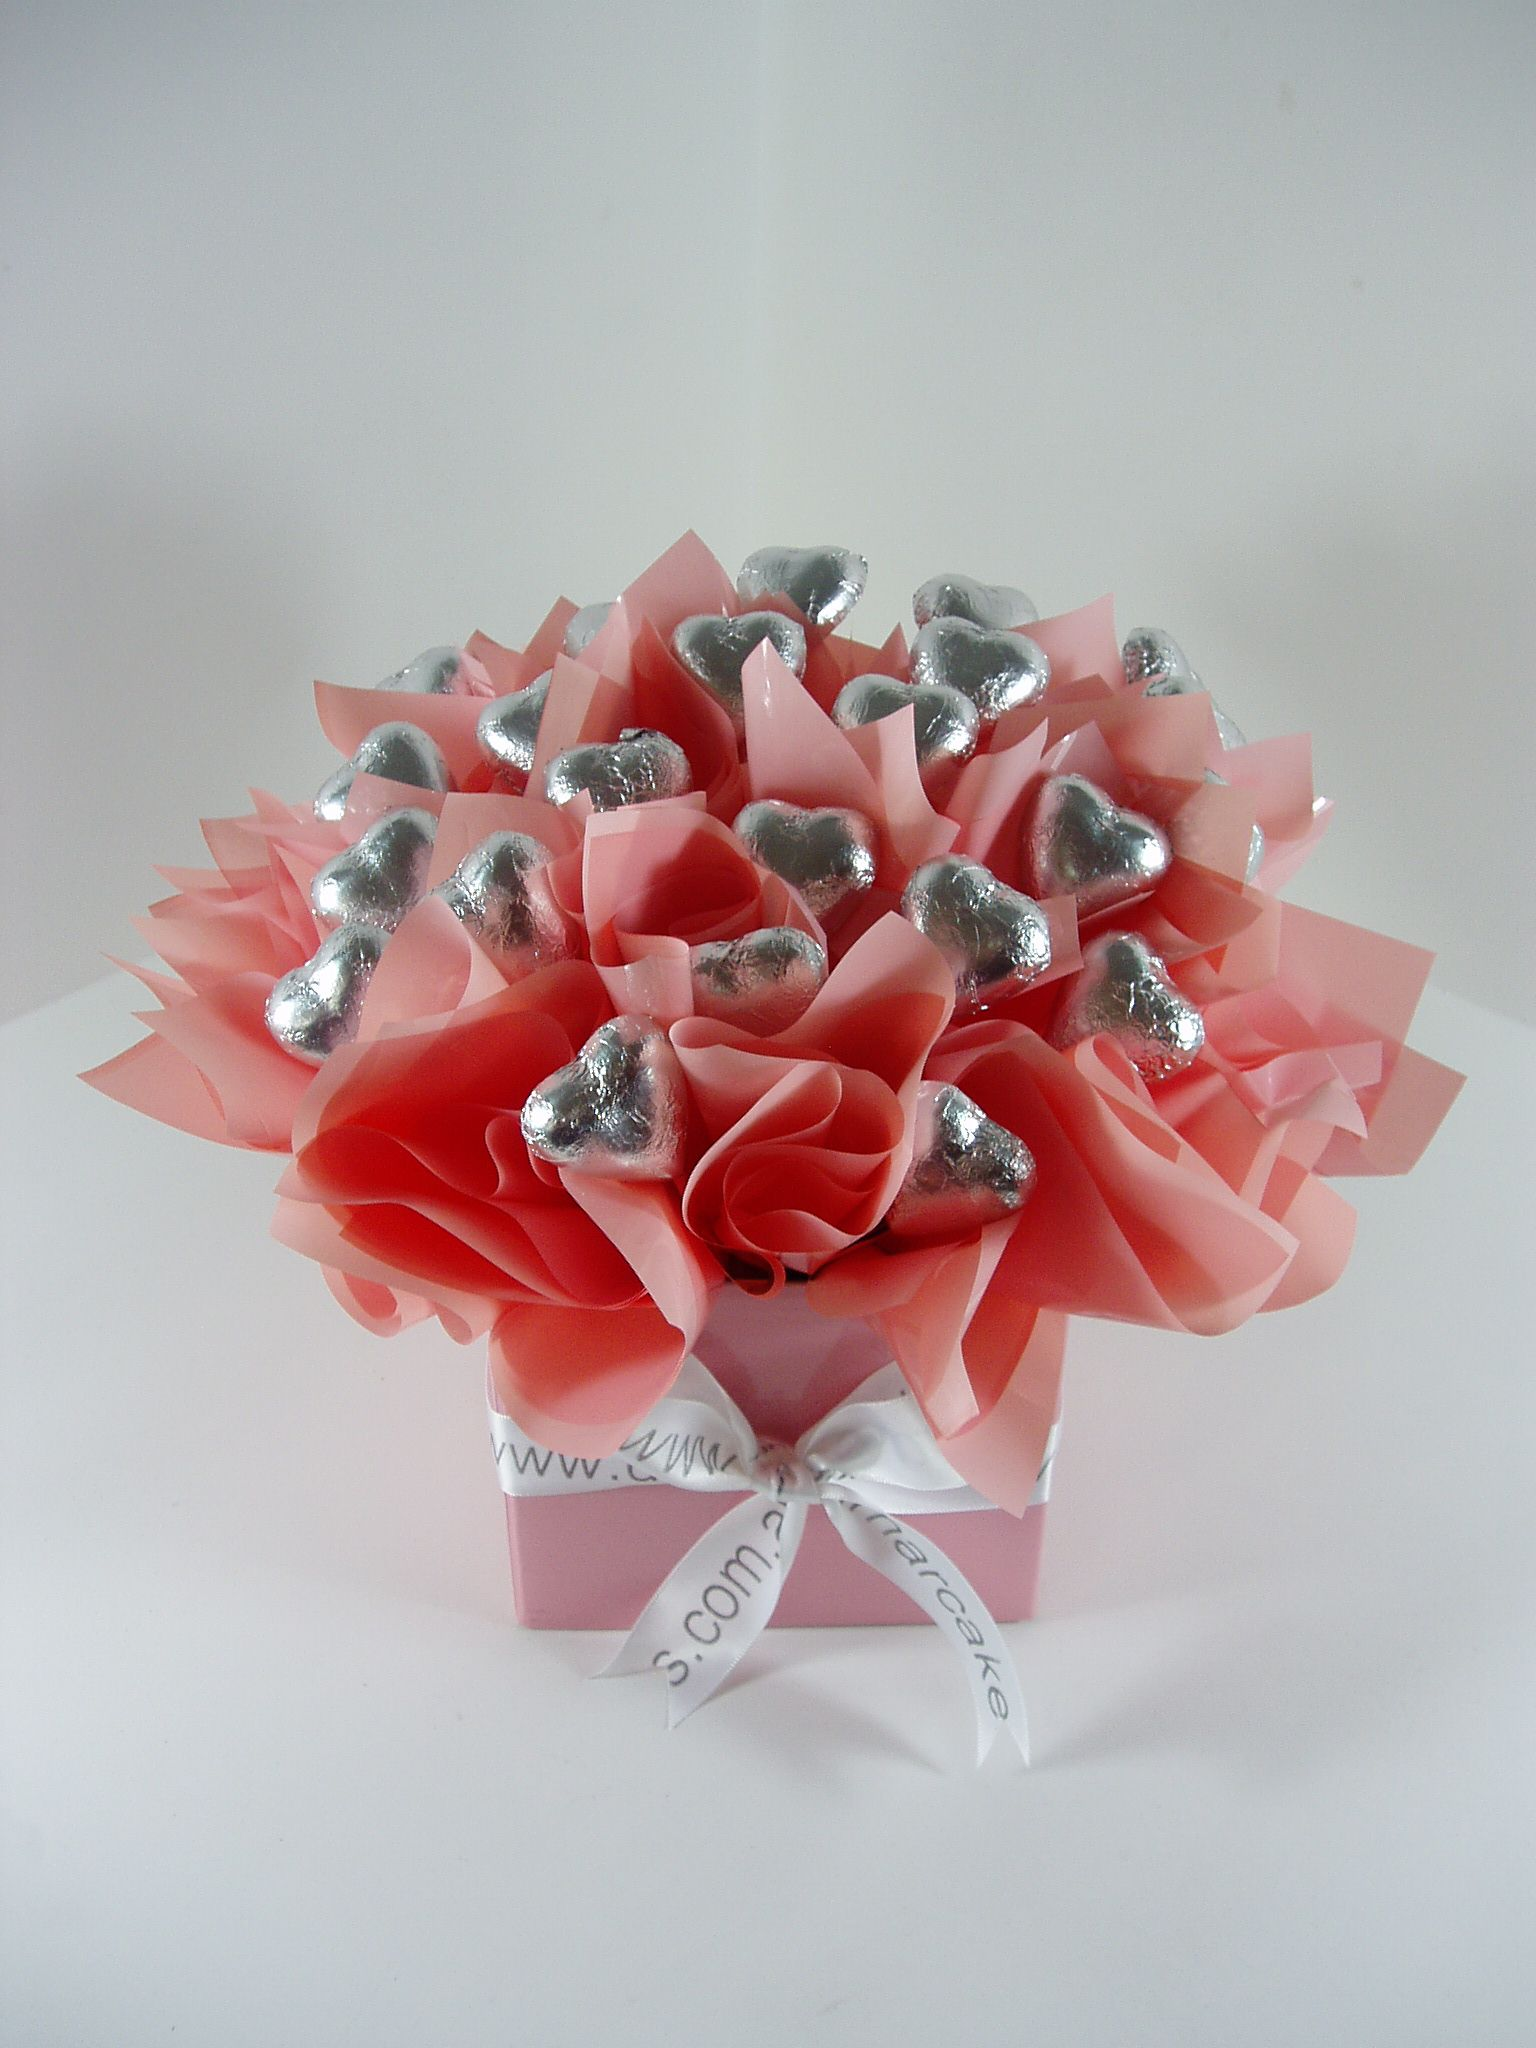 Slver heart chocolate bouquet proyectos que intentar pinterest 30 easy and beautiful valentine candy bouquet ideas izmirmasajfo Choice Image